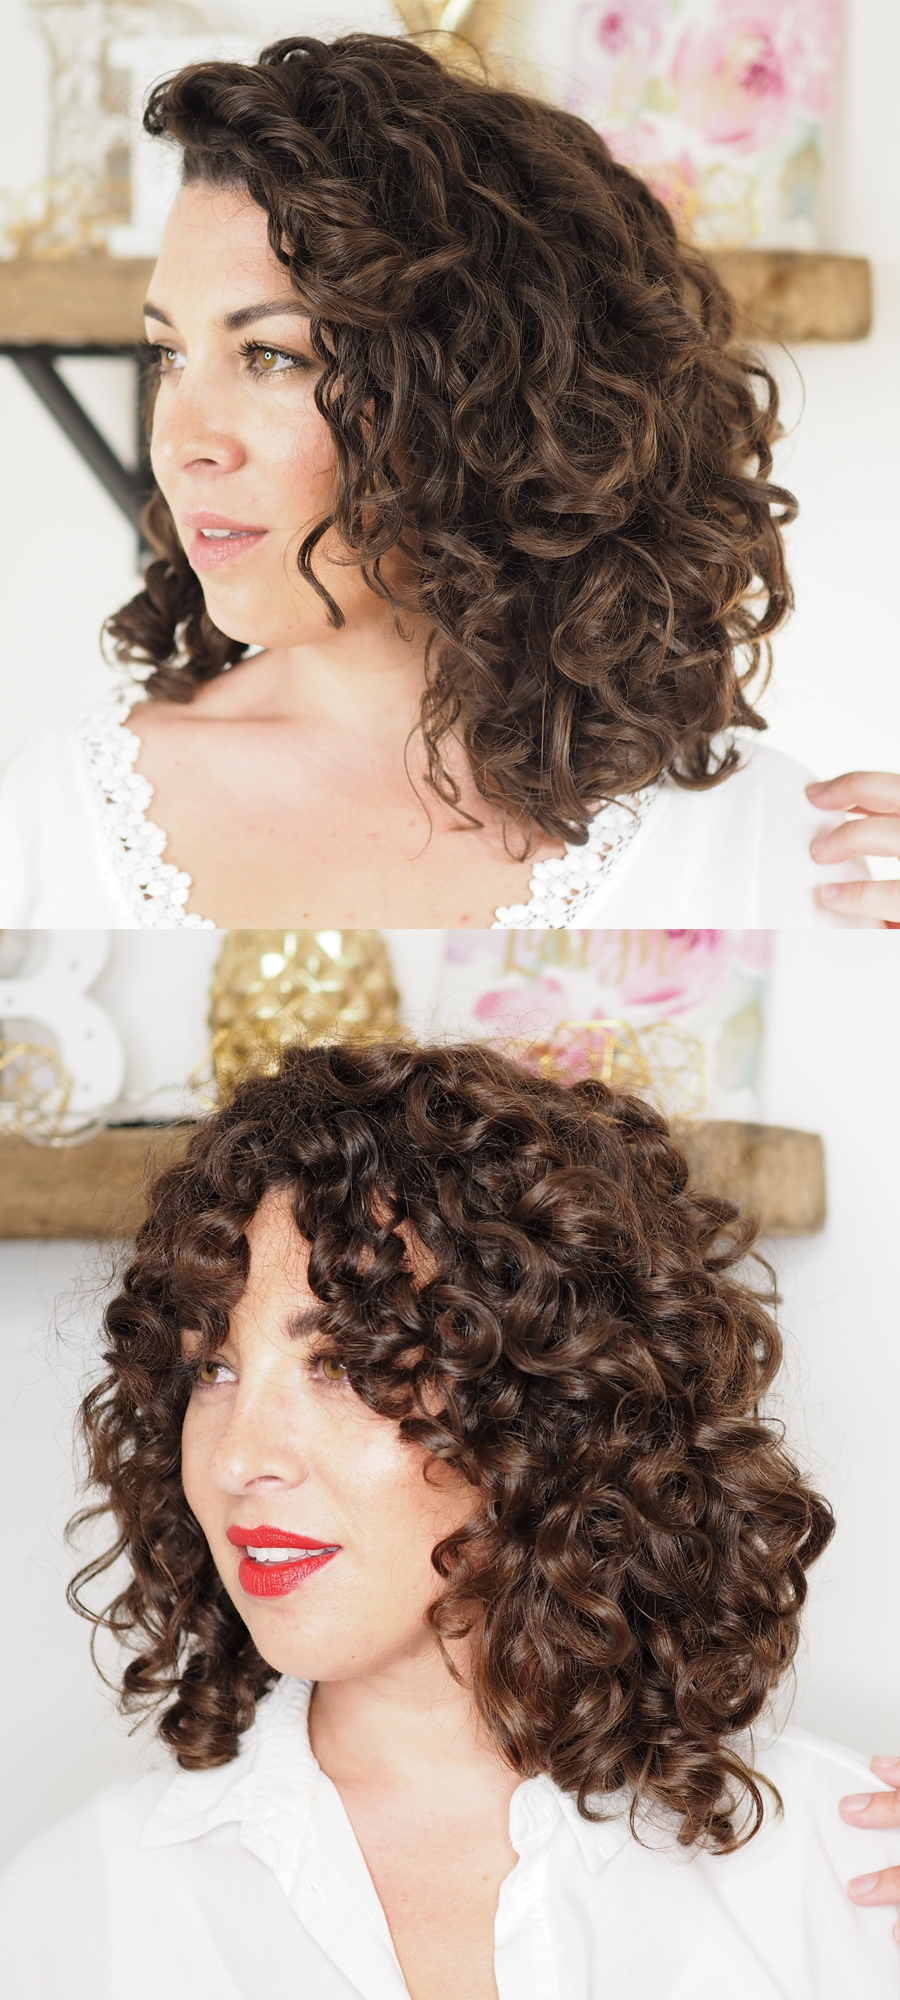 DIY curly cut for shape and volume